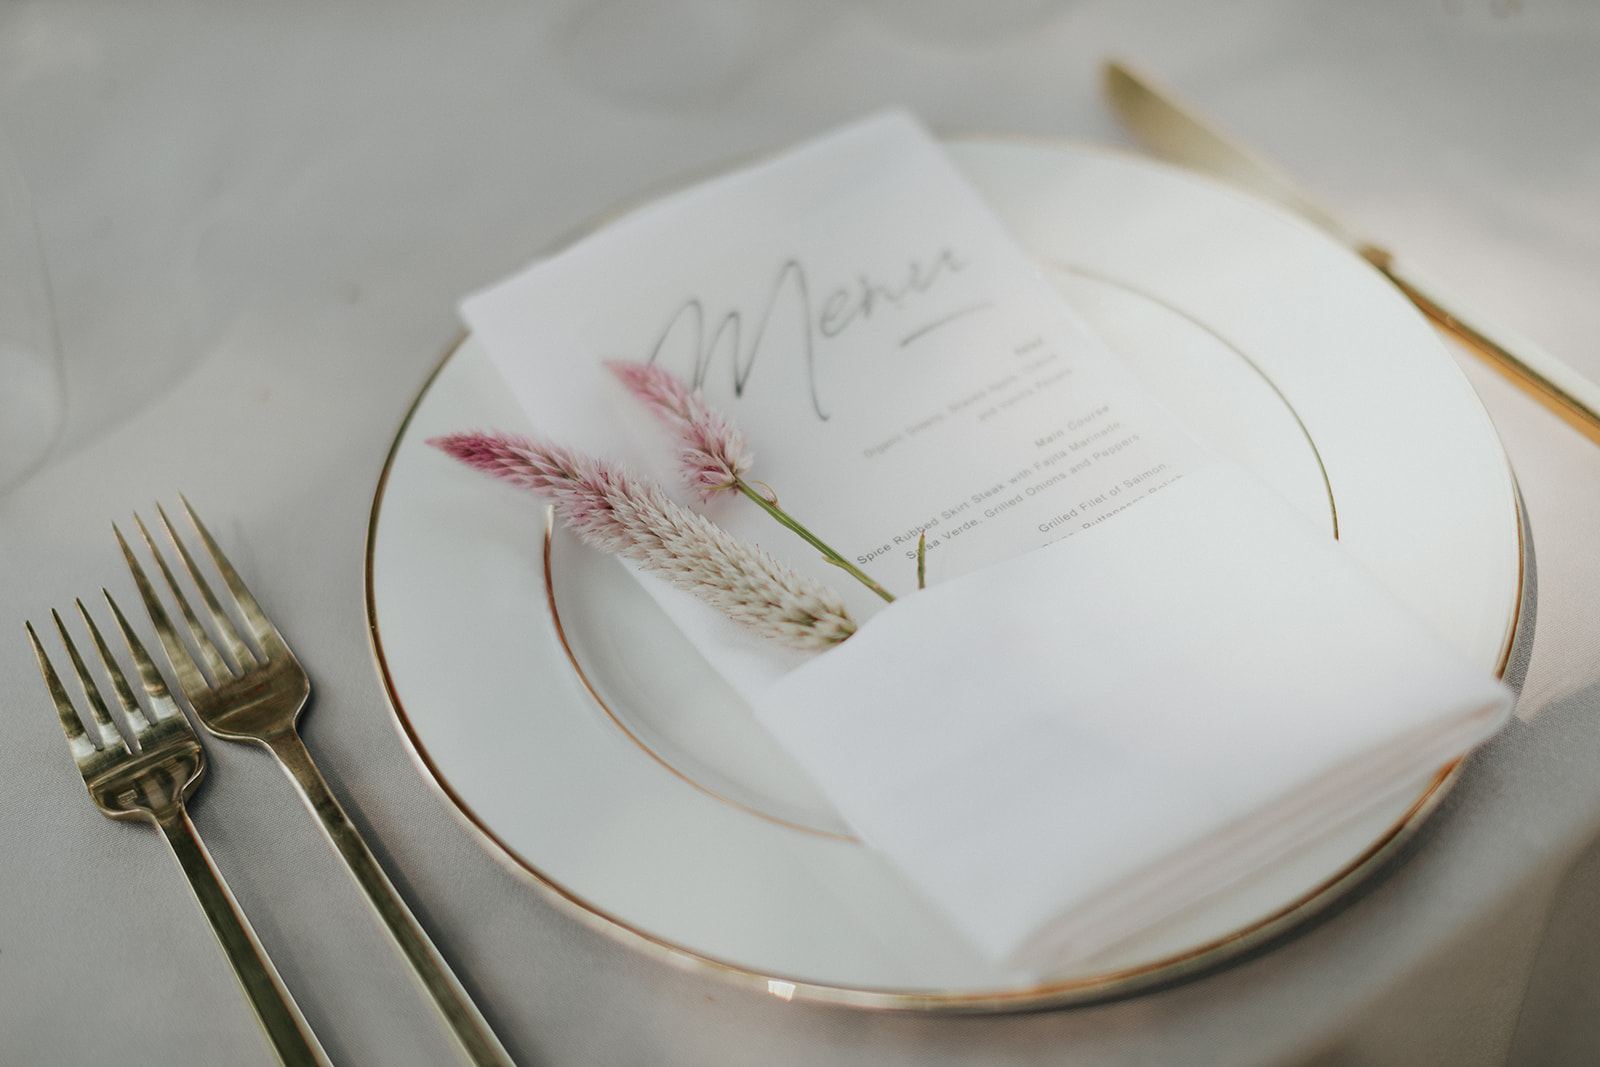 Flower stems for place setting by Venn Floral in Healdsburg at Ru's Farm photographed by Logan Cole.